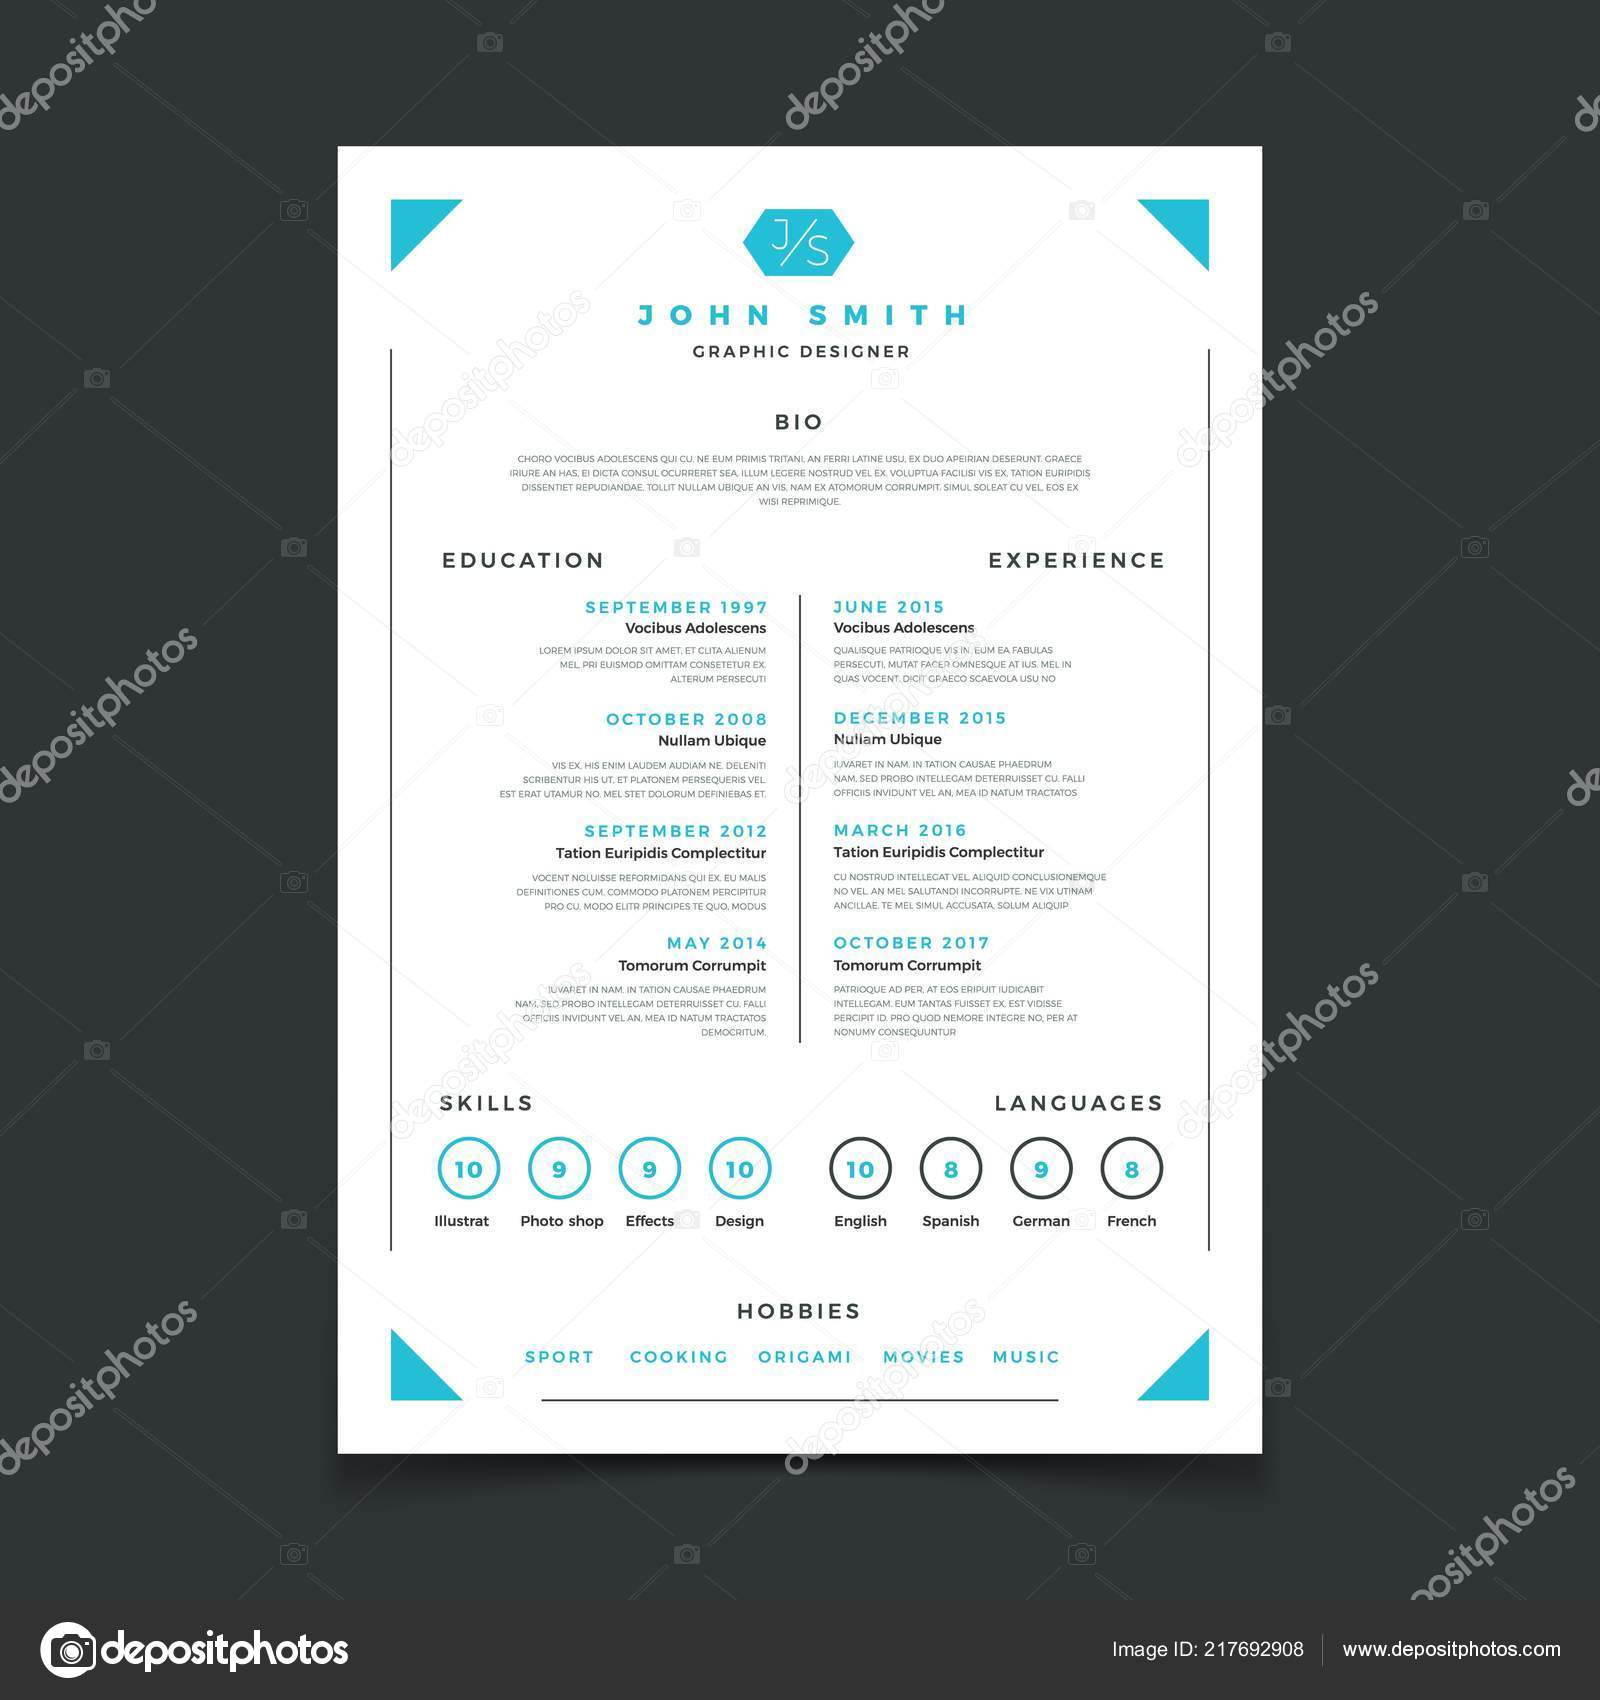 Cv Template Professional Resume Design With Business Details